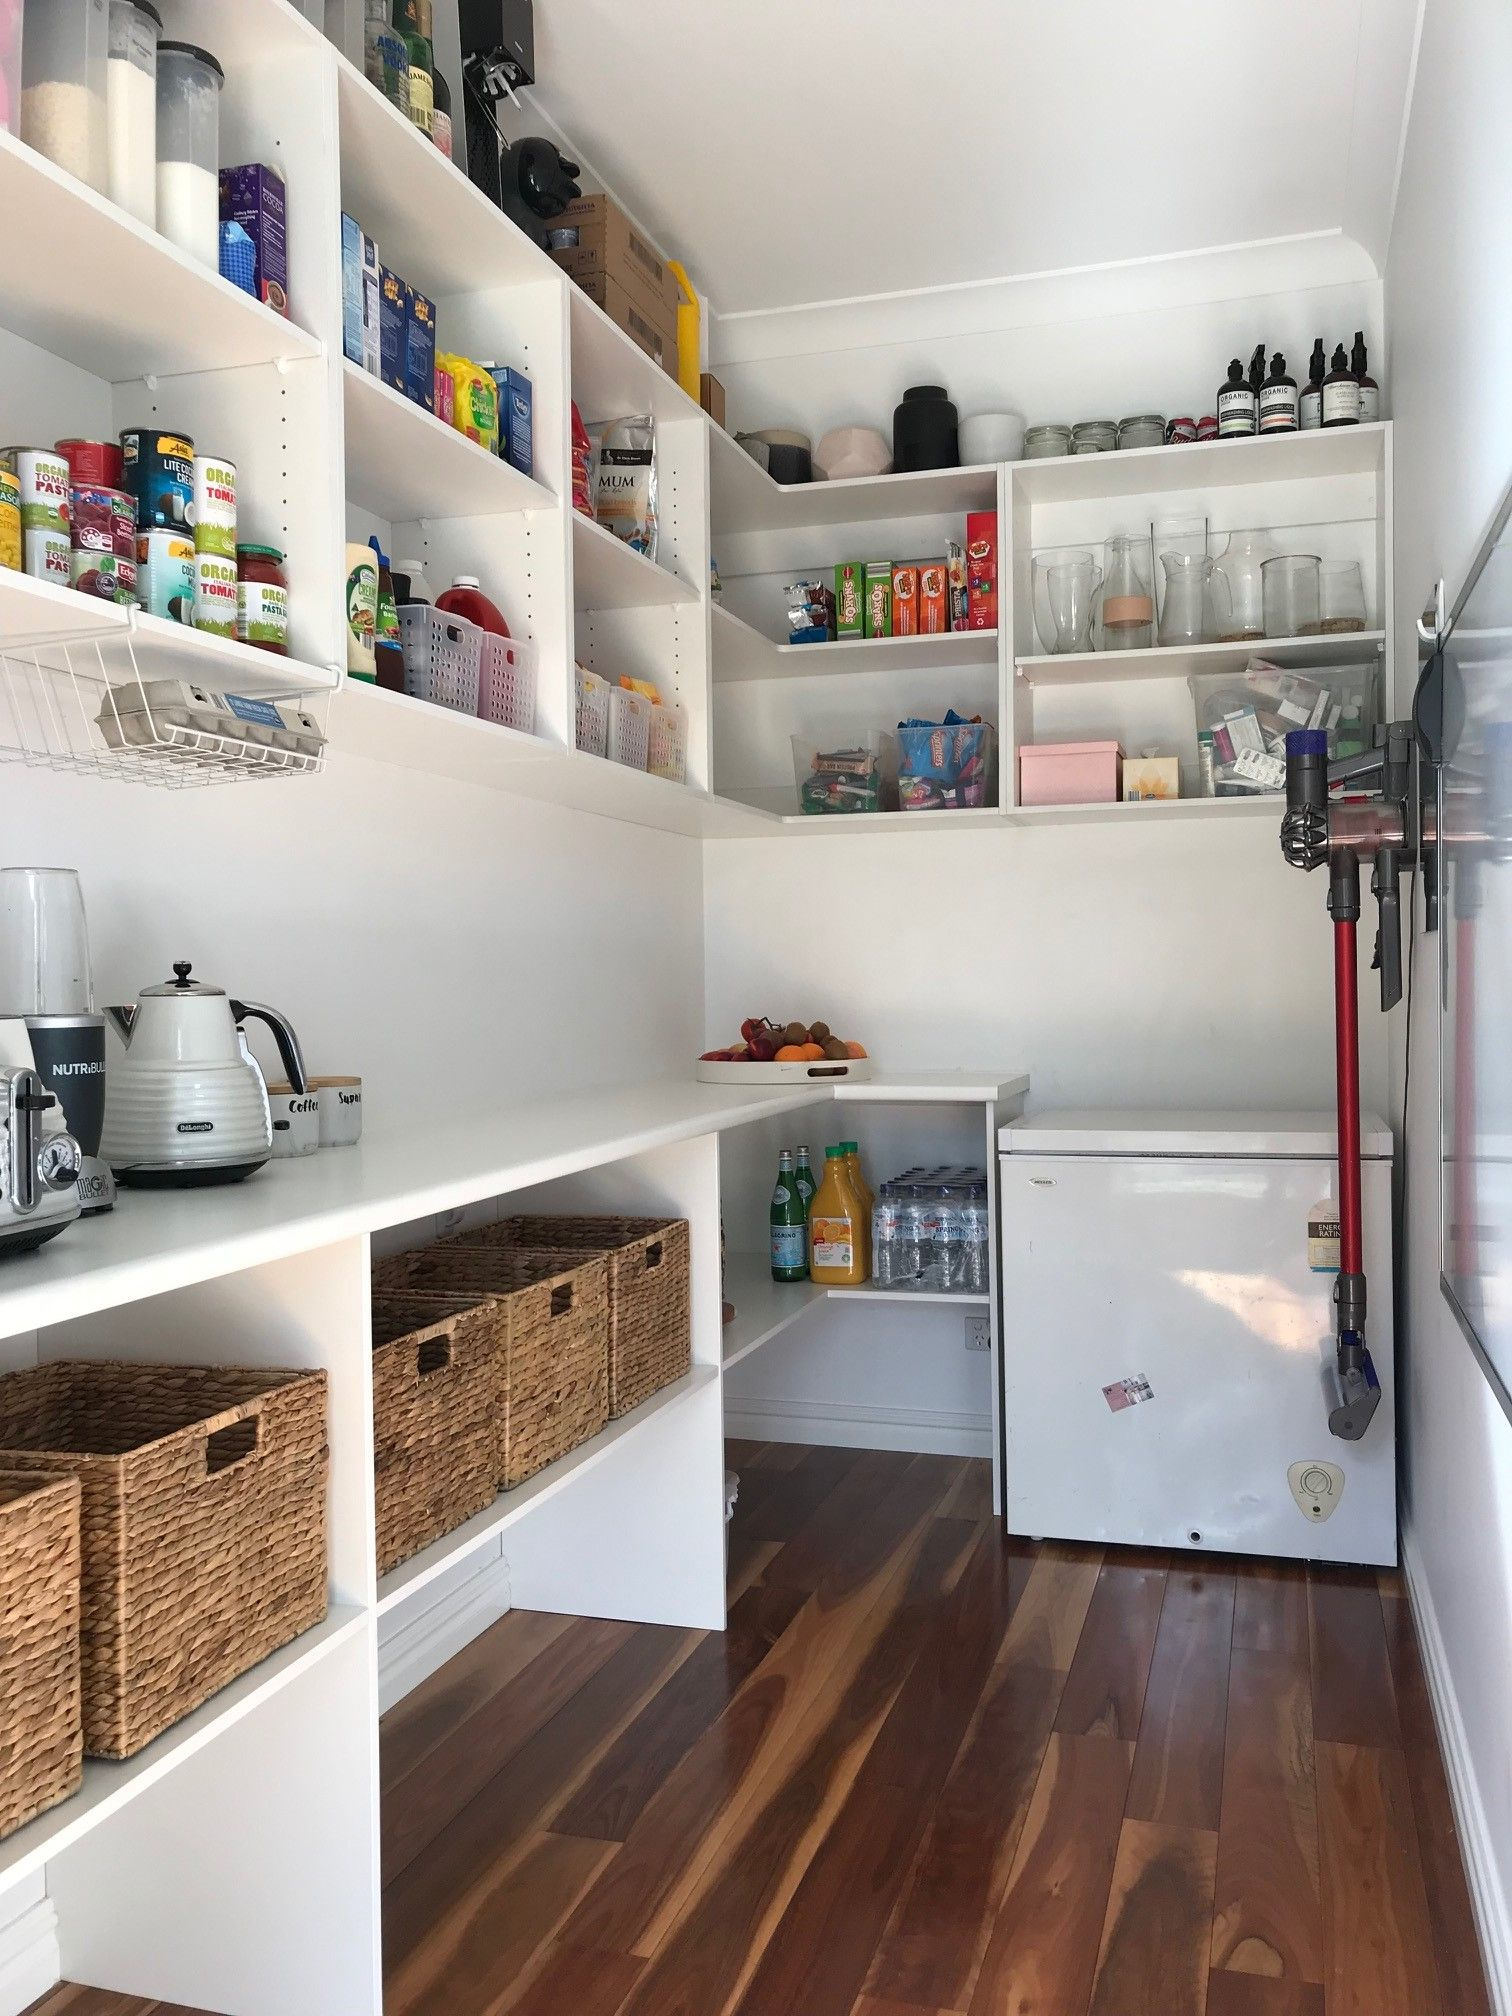 We Added Some Shelves To Our Walk In Pantry Diy Pantry